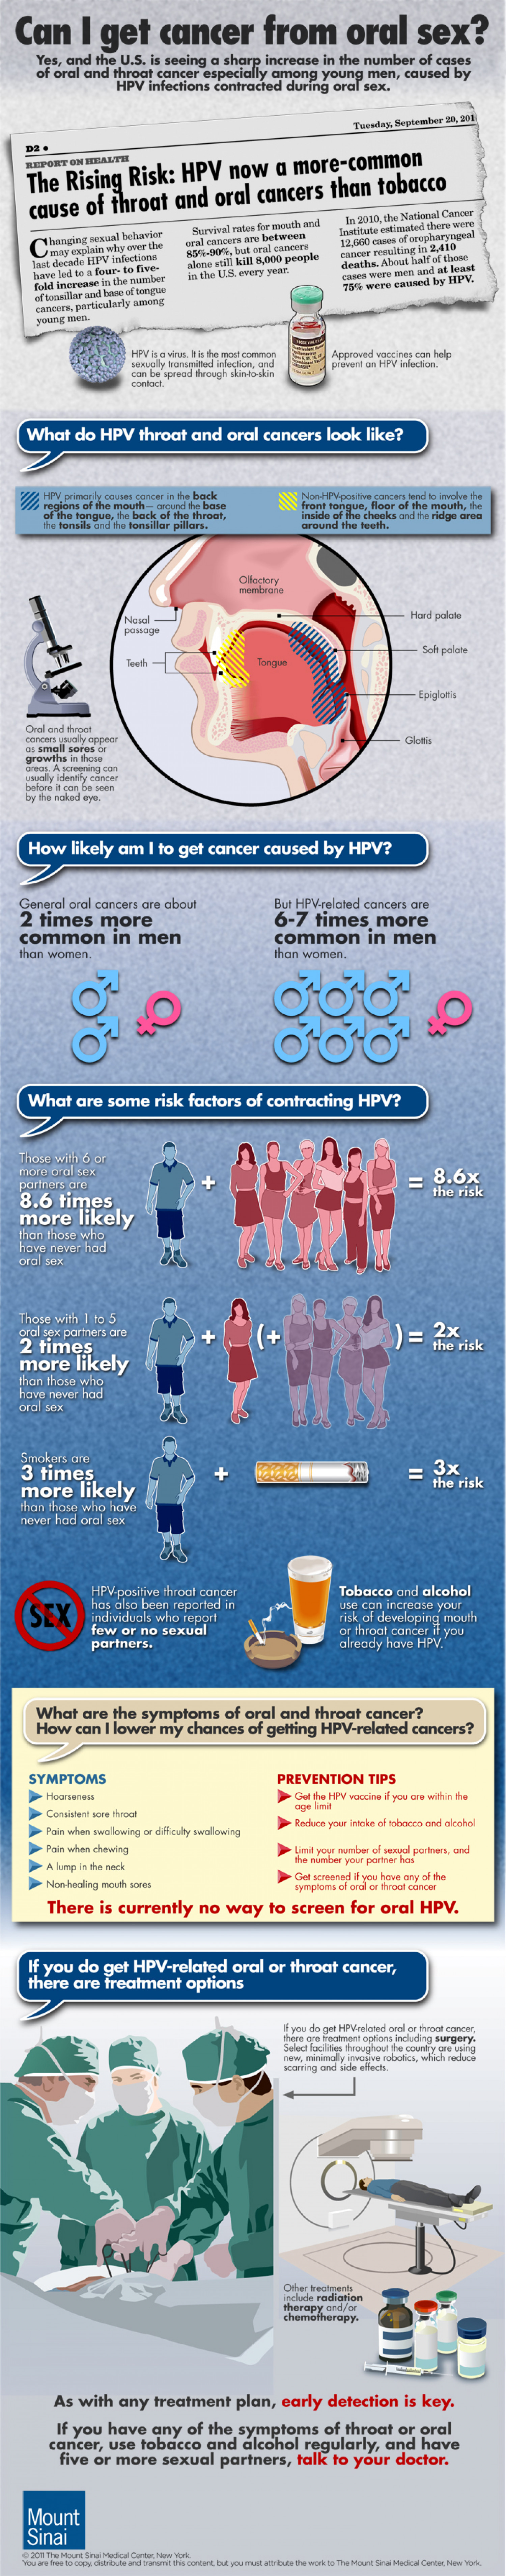 Can I Get Cancer From Oral Sex?  Infographic